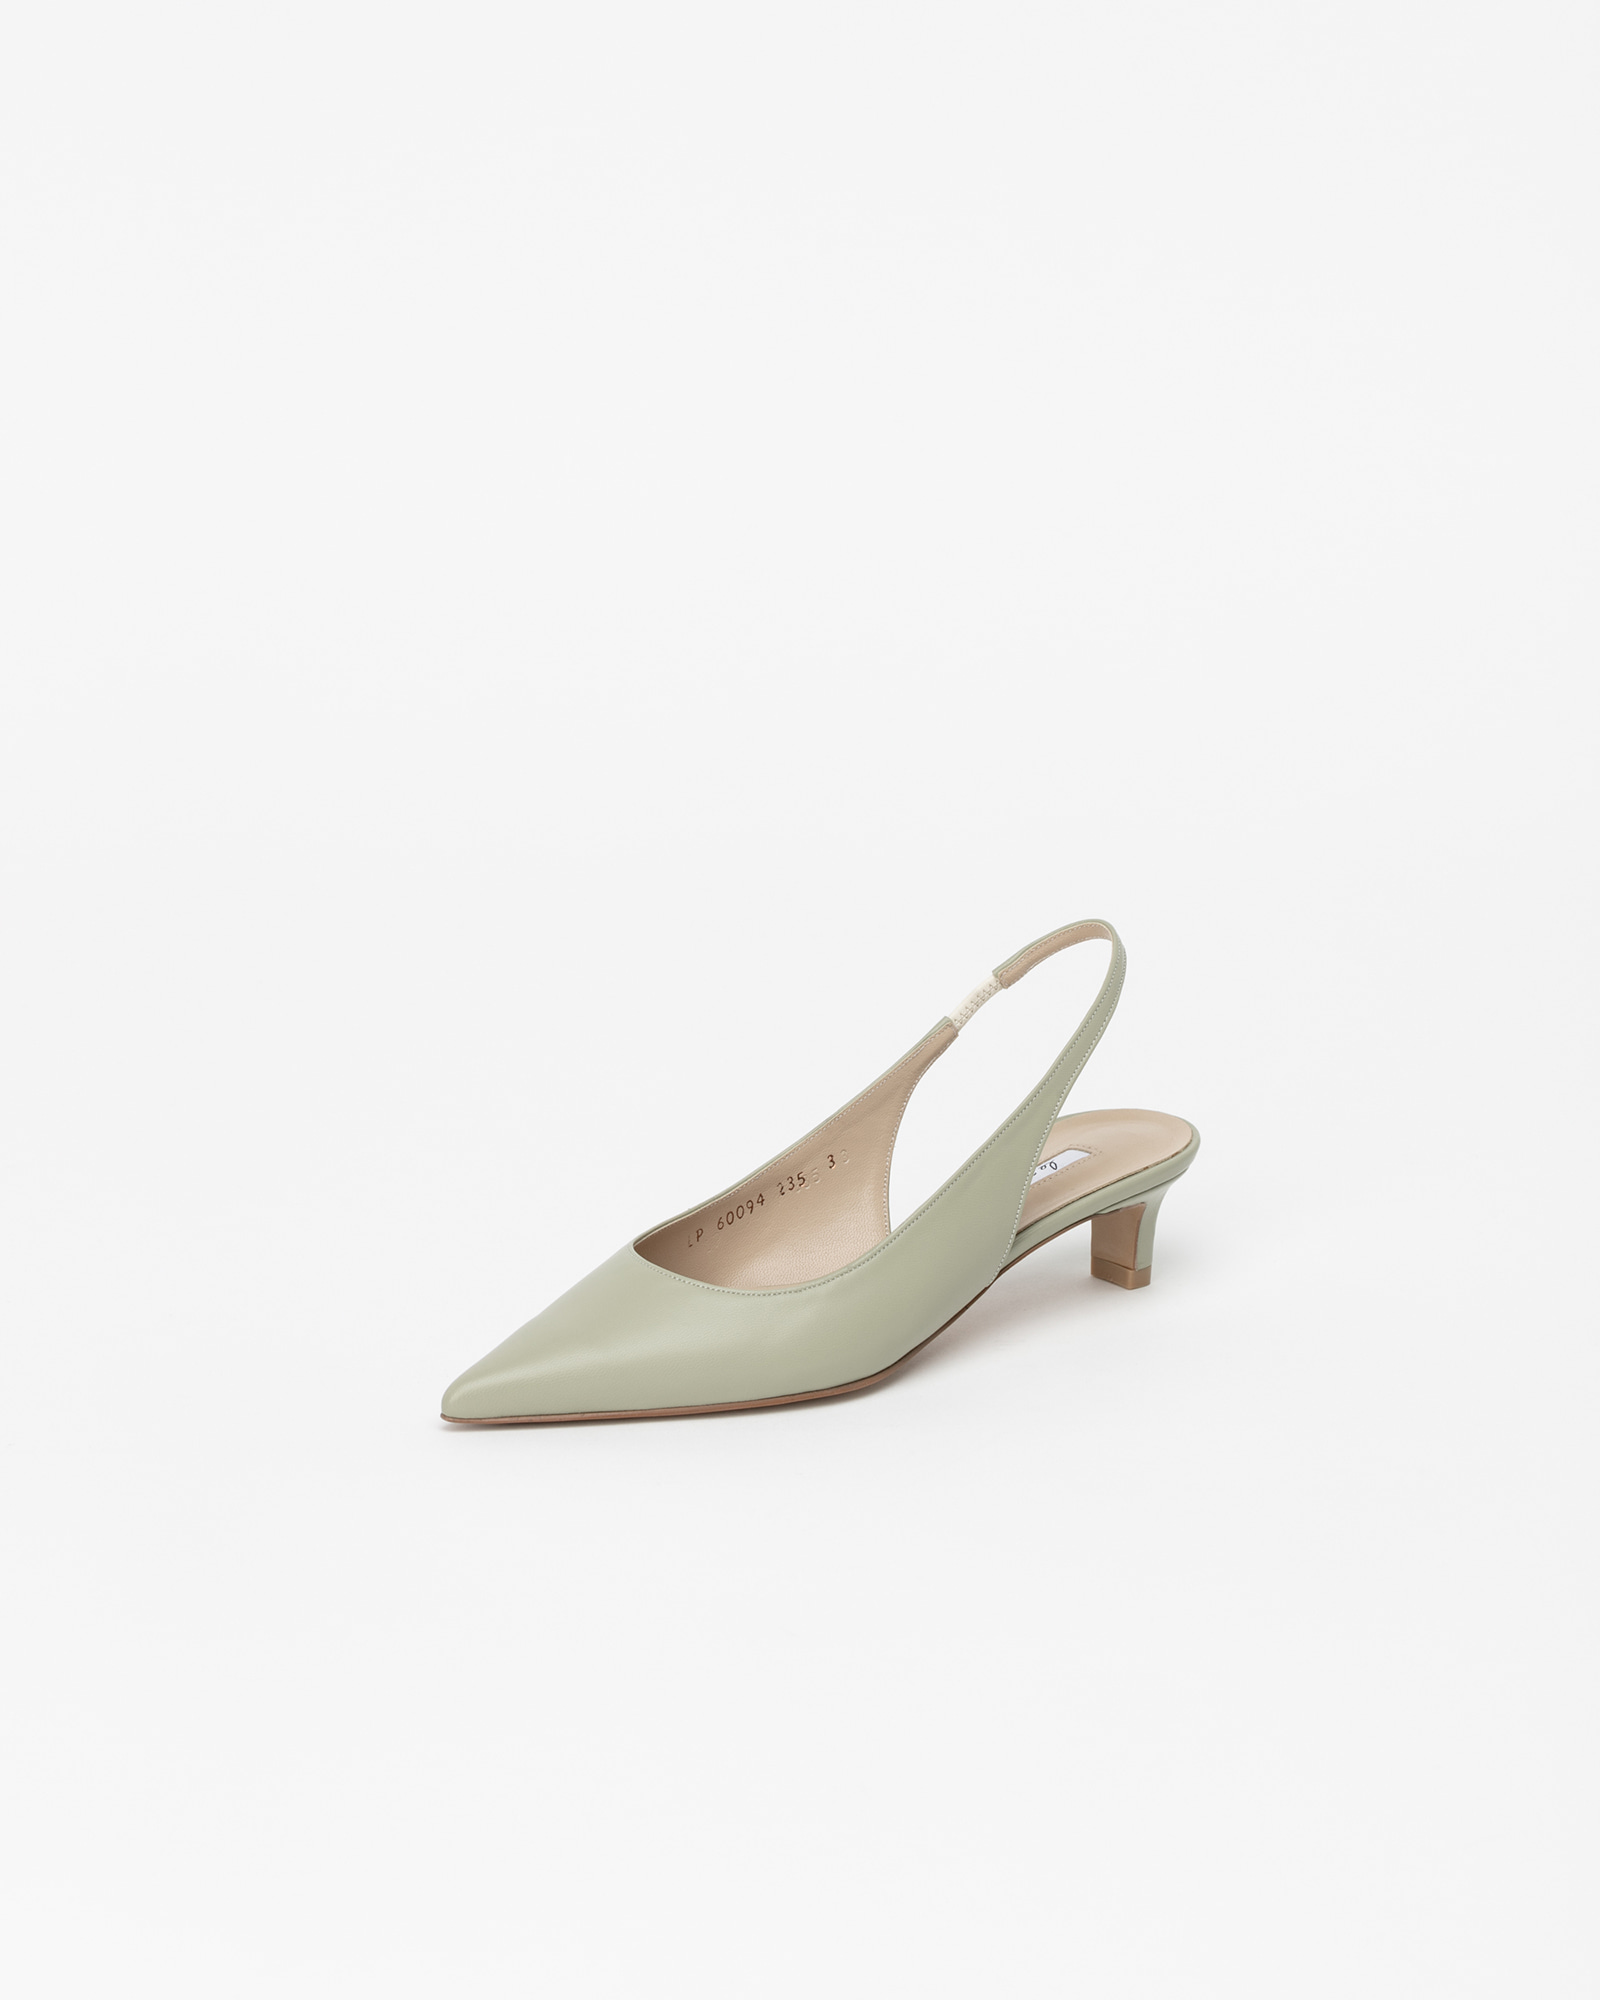 Philo Nouvelle Slingbacks in Lime Green